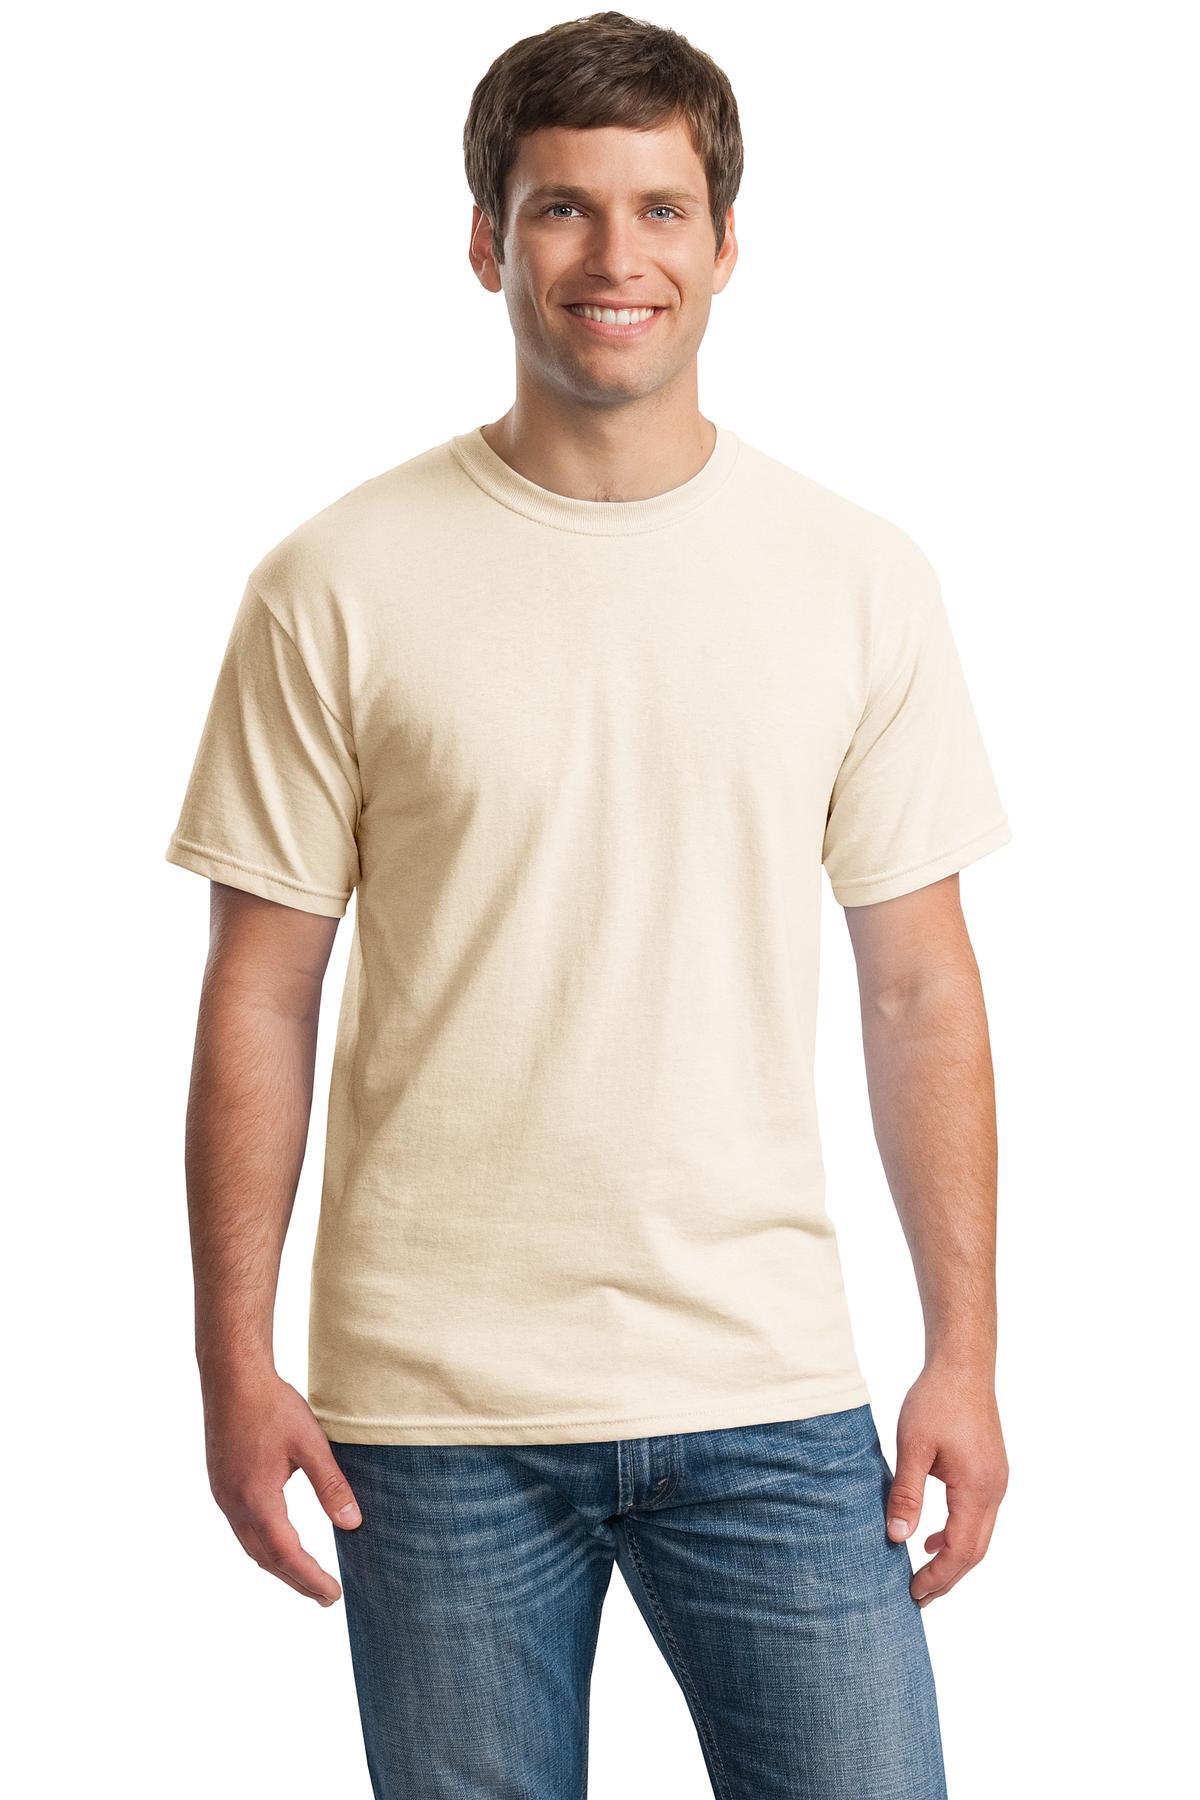 Gildan ®  - Heavy Cotton ™  100% Cotton T-Shirt.  5000 - Natural